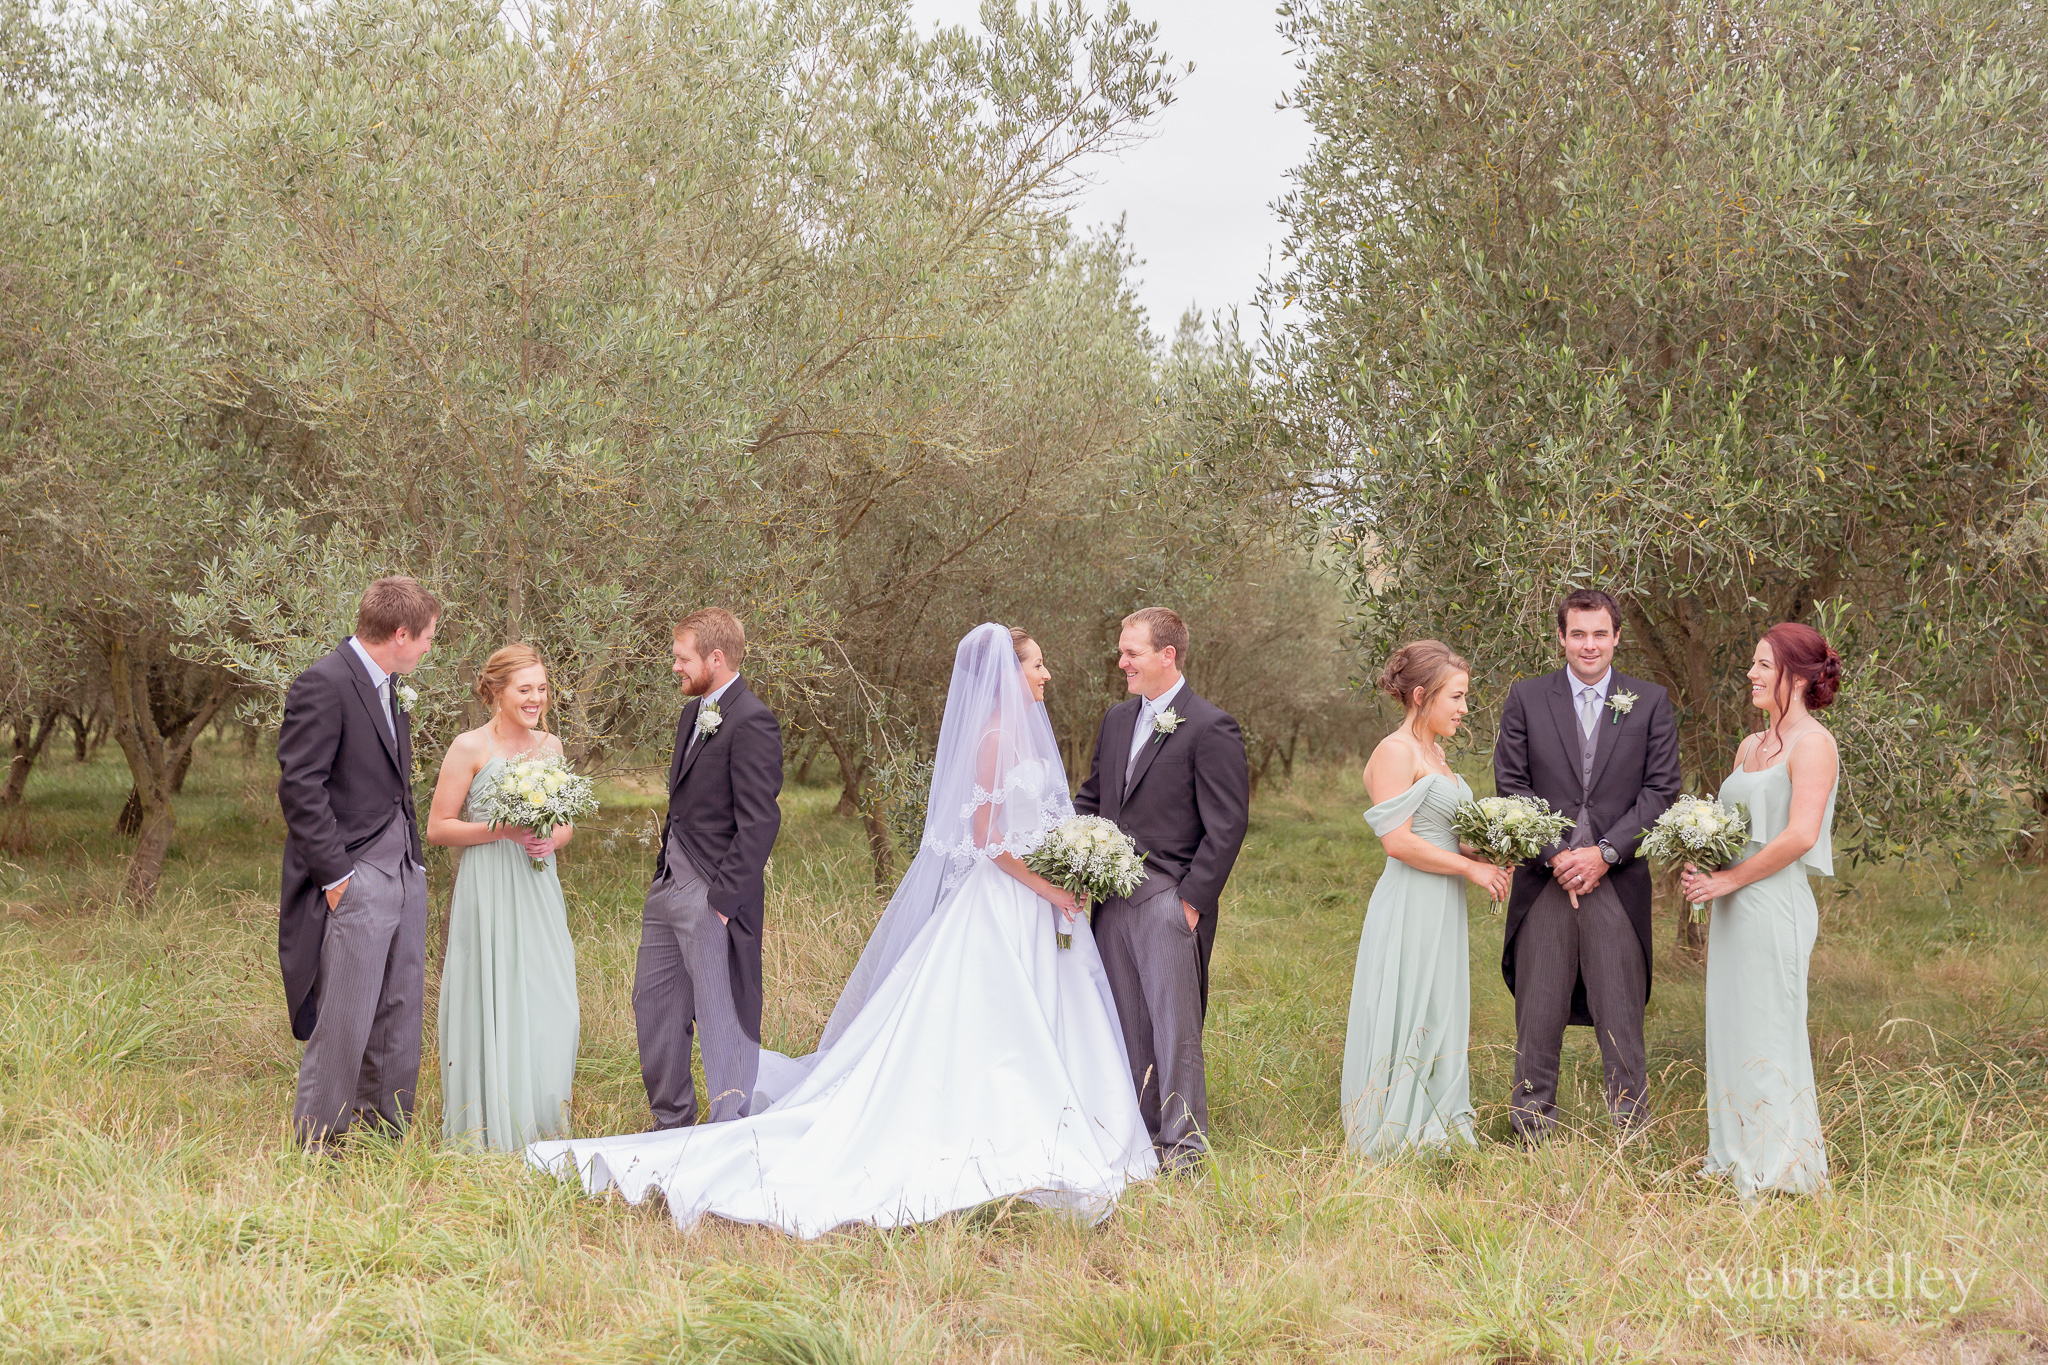 wedding-photographers-eva-bradley